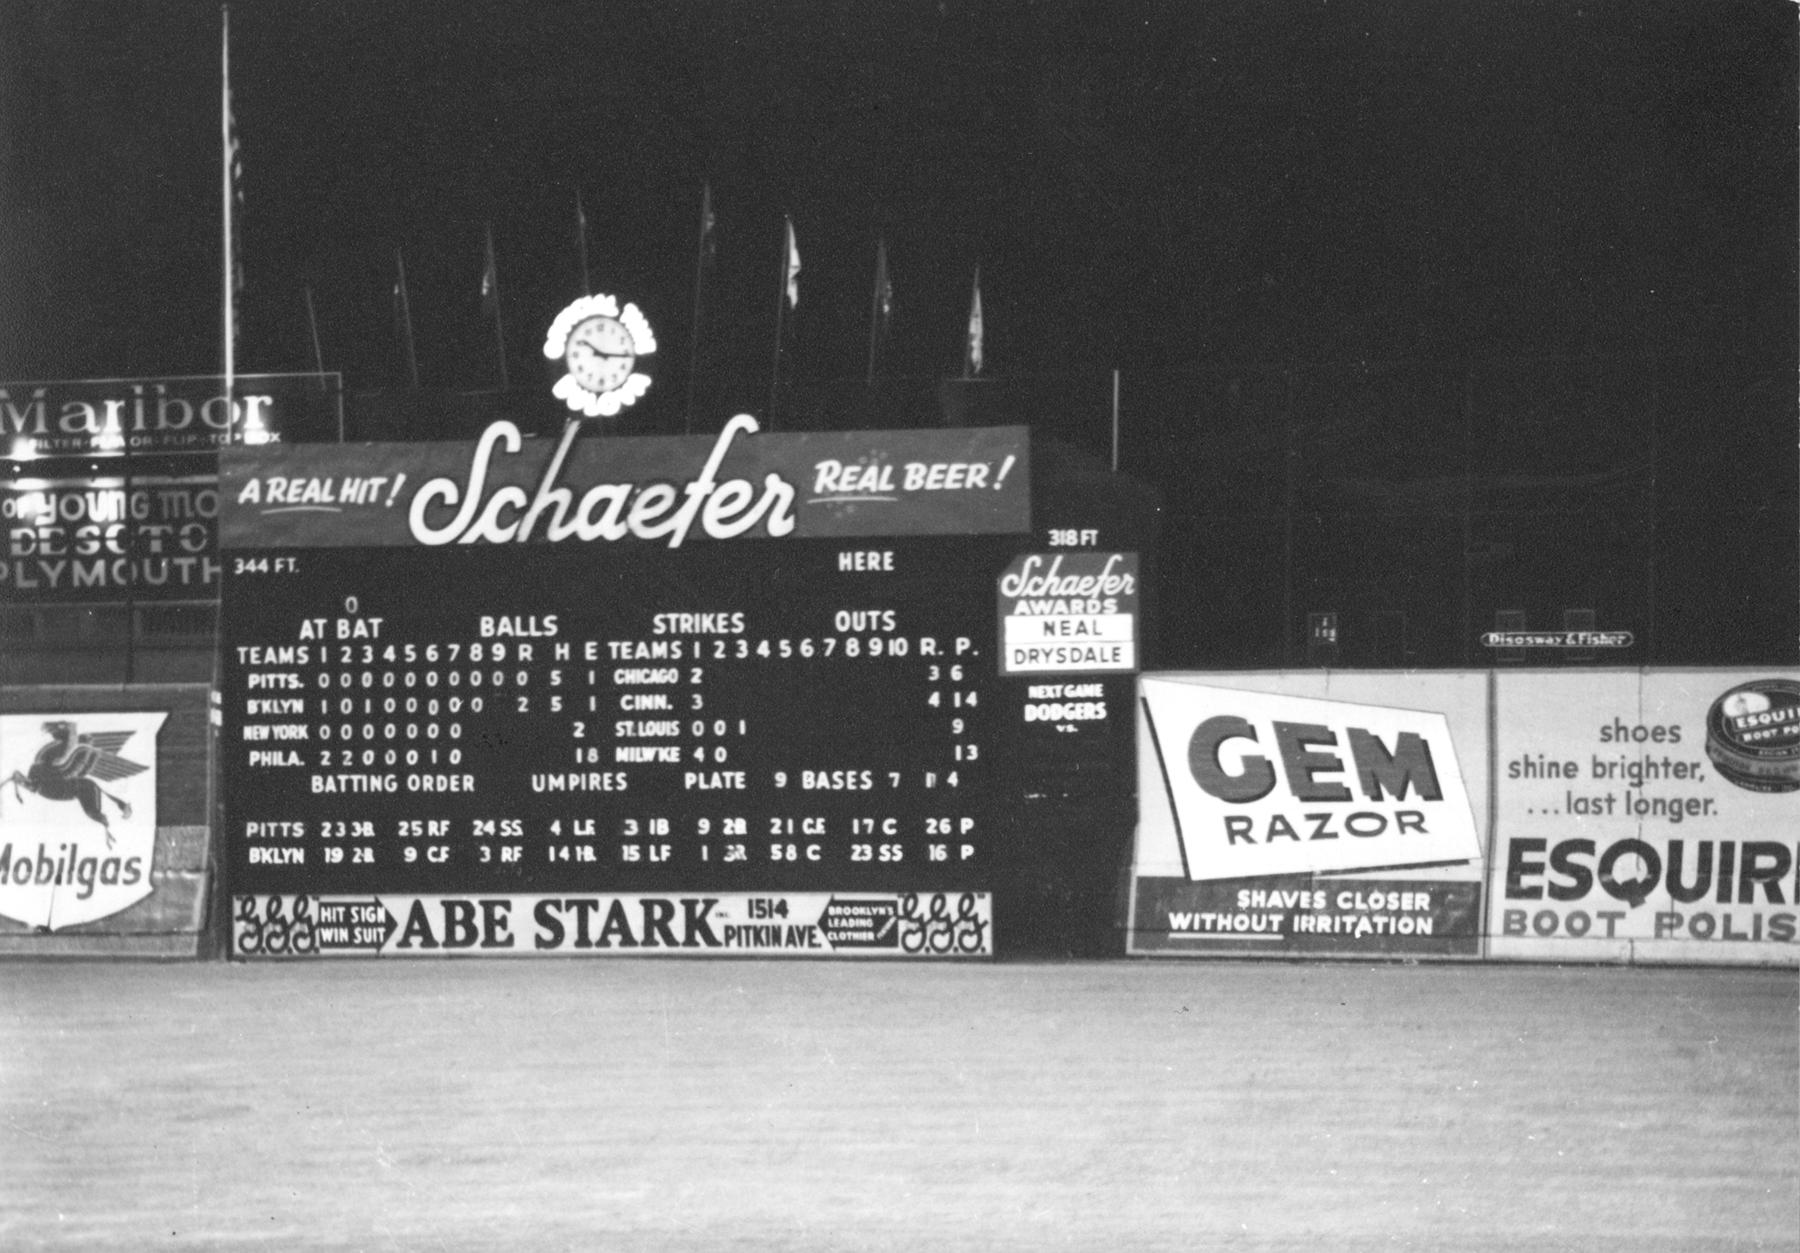 The Dodgers played their last game at Brooklyn's Ebbets Field on Sept. 24, 1957, defeating the Pirates 2-0. (National Baseball Hall of Fame and Museum)